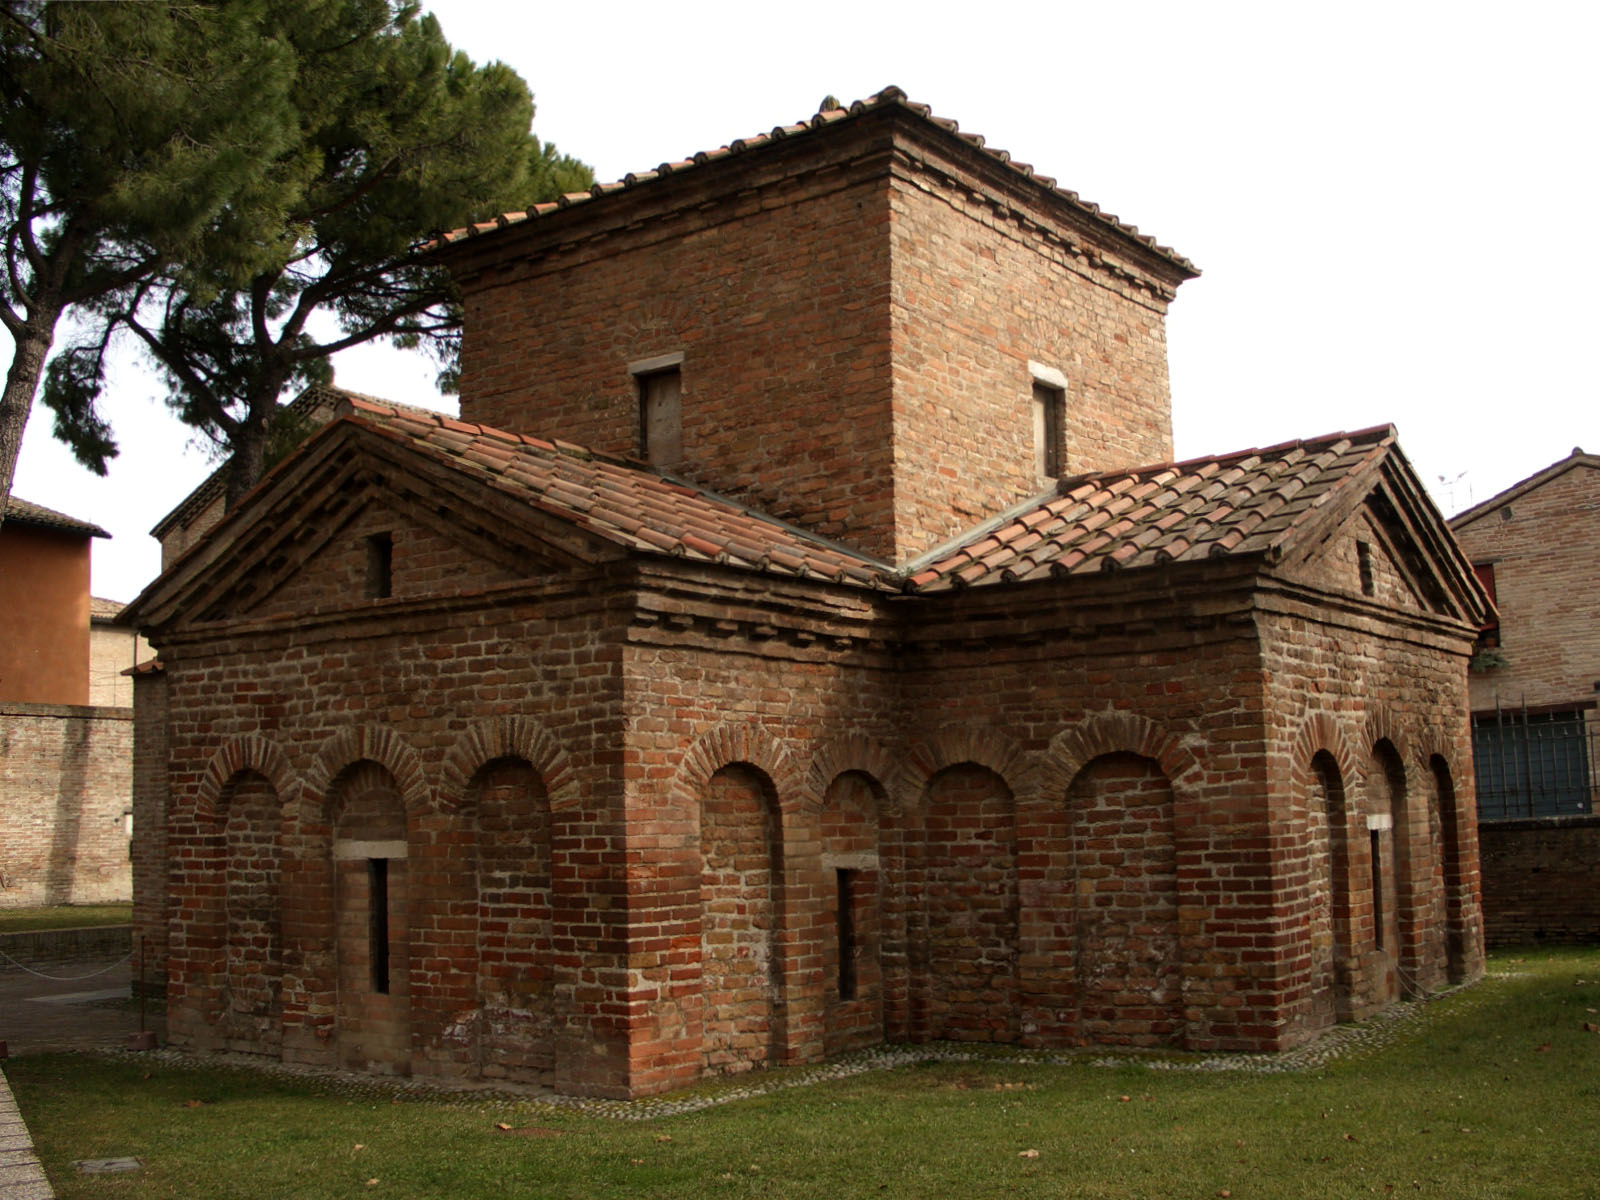 Mausoleo di Galla Placida - Ravenna